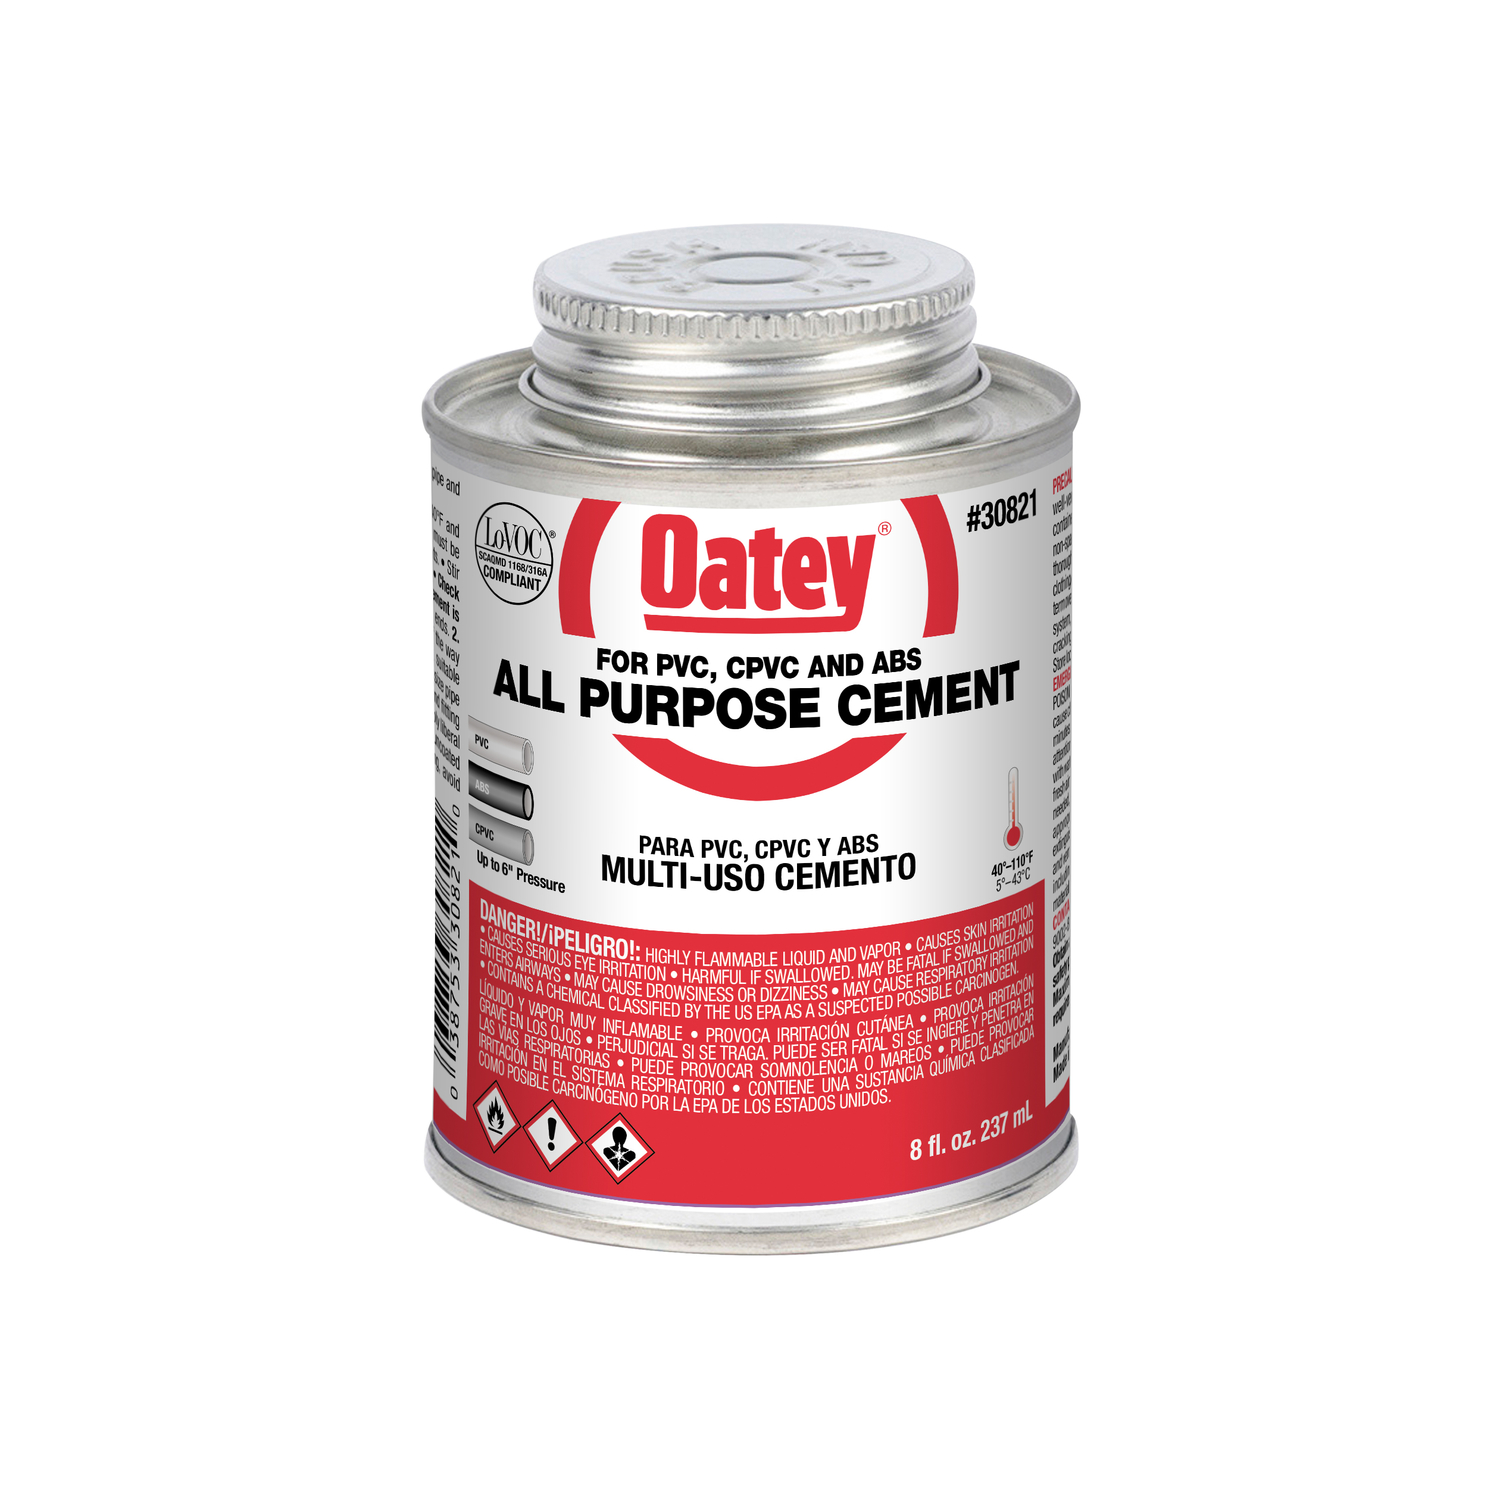 Oatey  All-Purpose Cement  For CPVC/PVC Clear  8 oz.